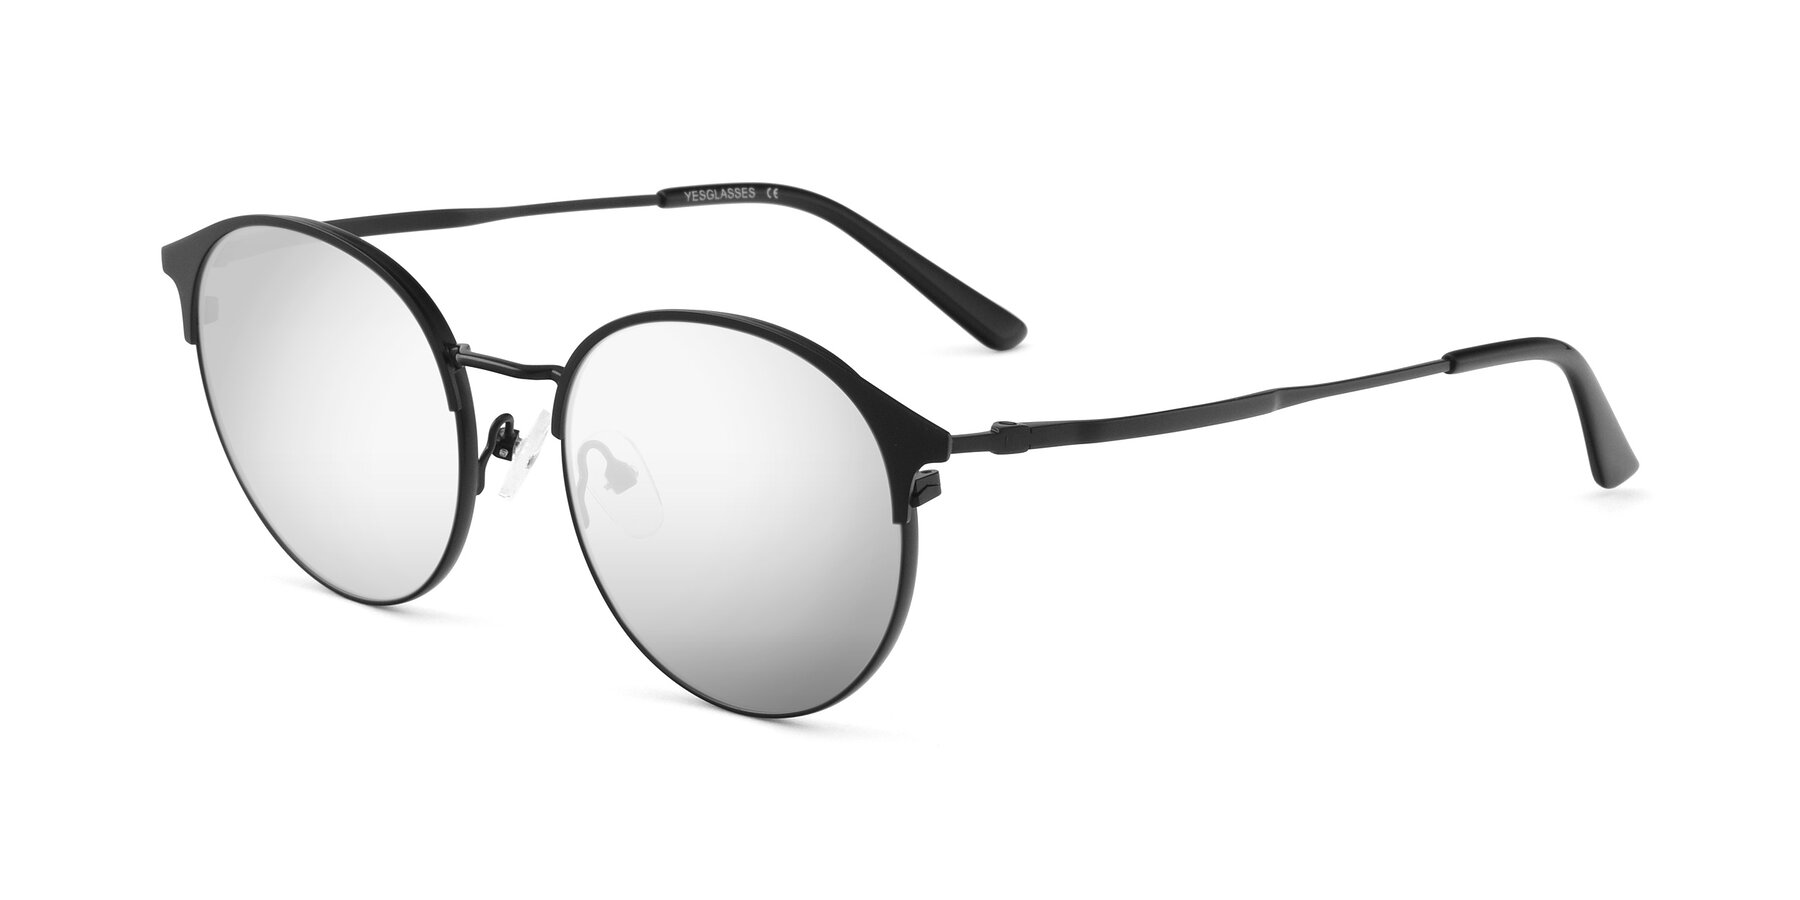 Angle of Berkley in Matte Black with Silver Mirrored Lenses